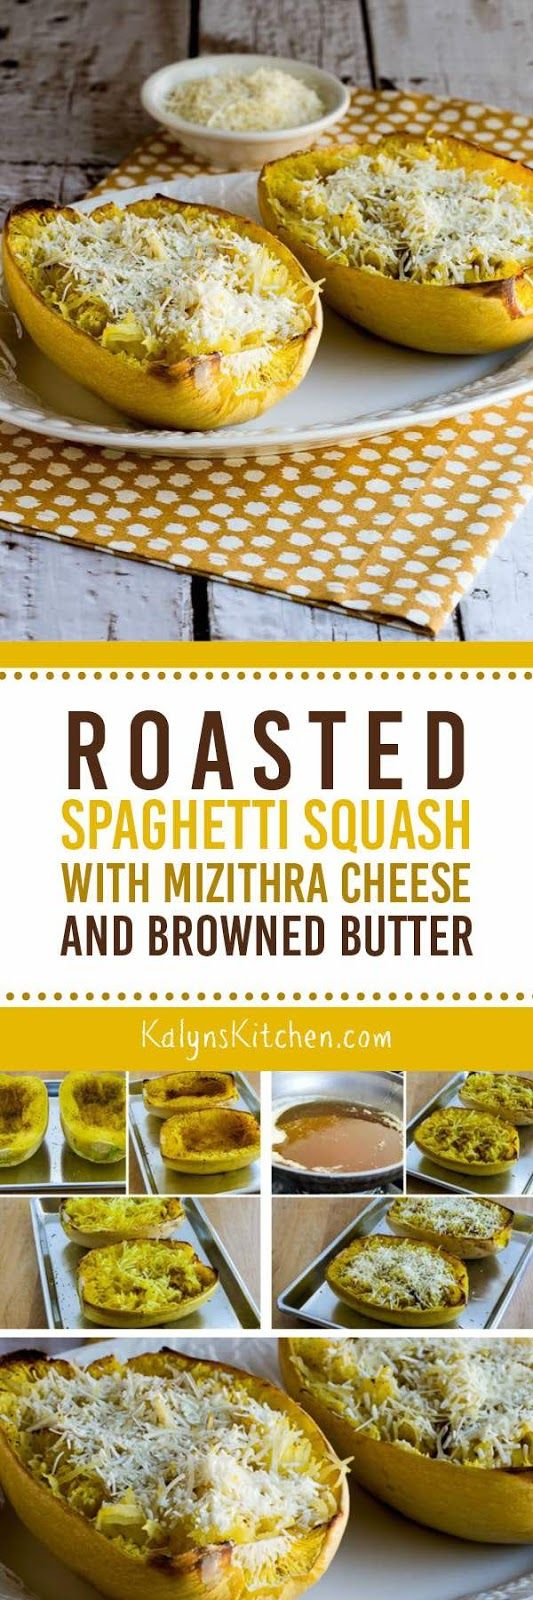 Roasted Spaghetti Squash with Mizithra Cheese and Browned Butter found on…